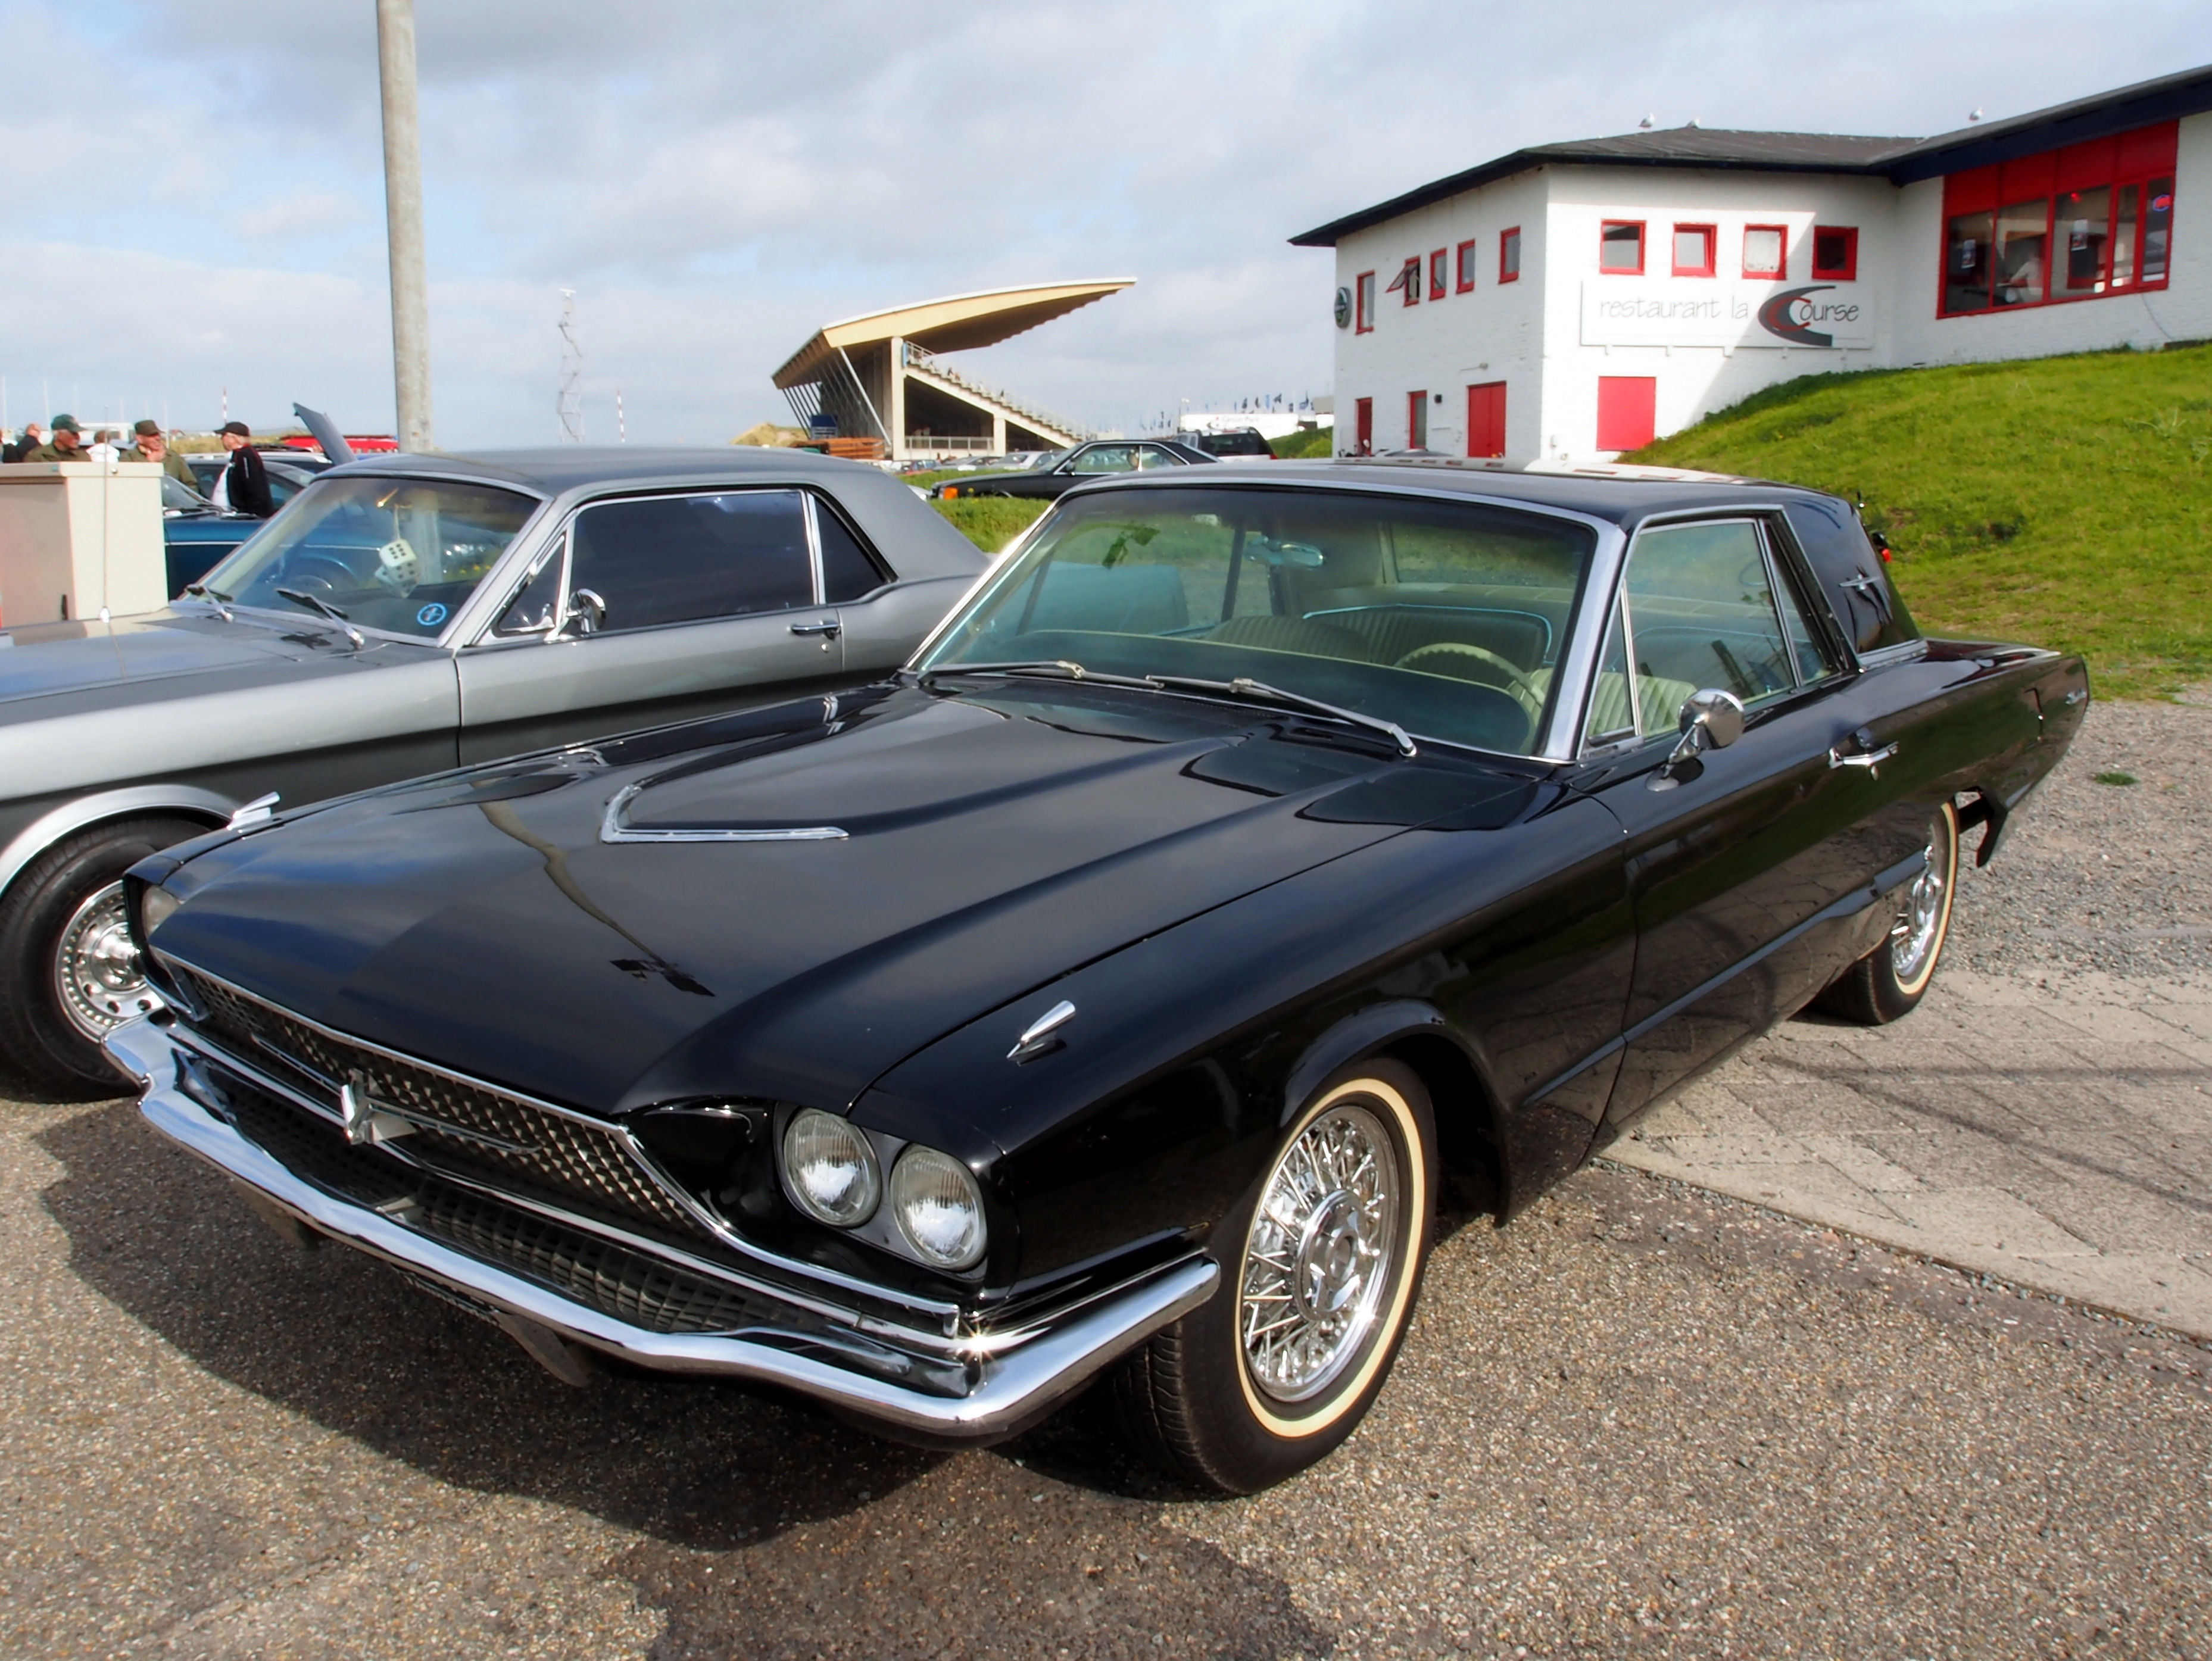 file black 1966 ford thunderbird pic1 jpg wikimedia commons. Black Bedroom Furniture Sets. Home Design Ideas